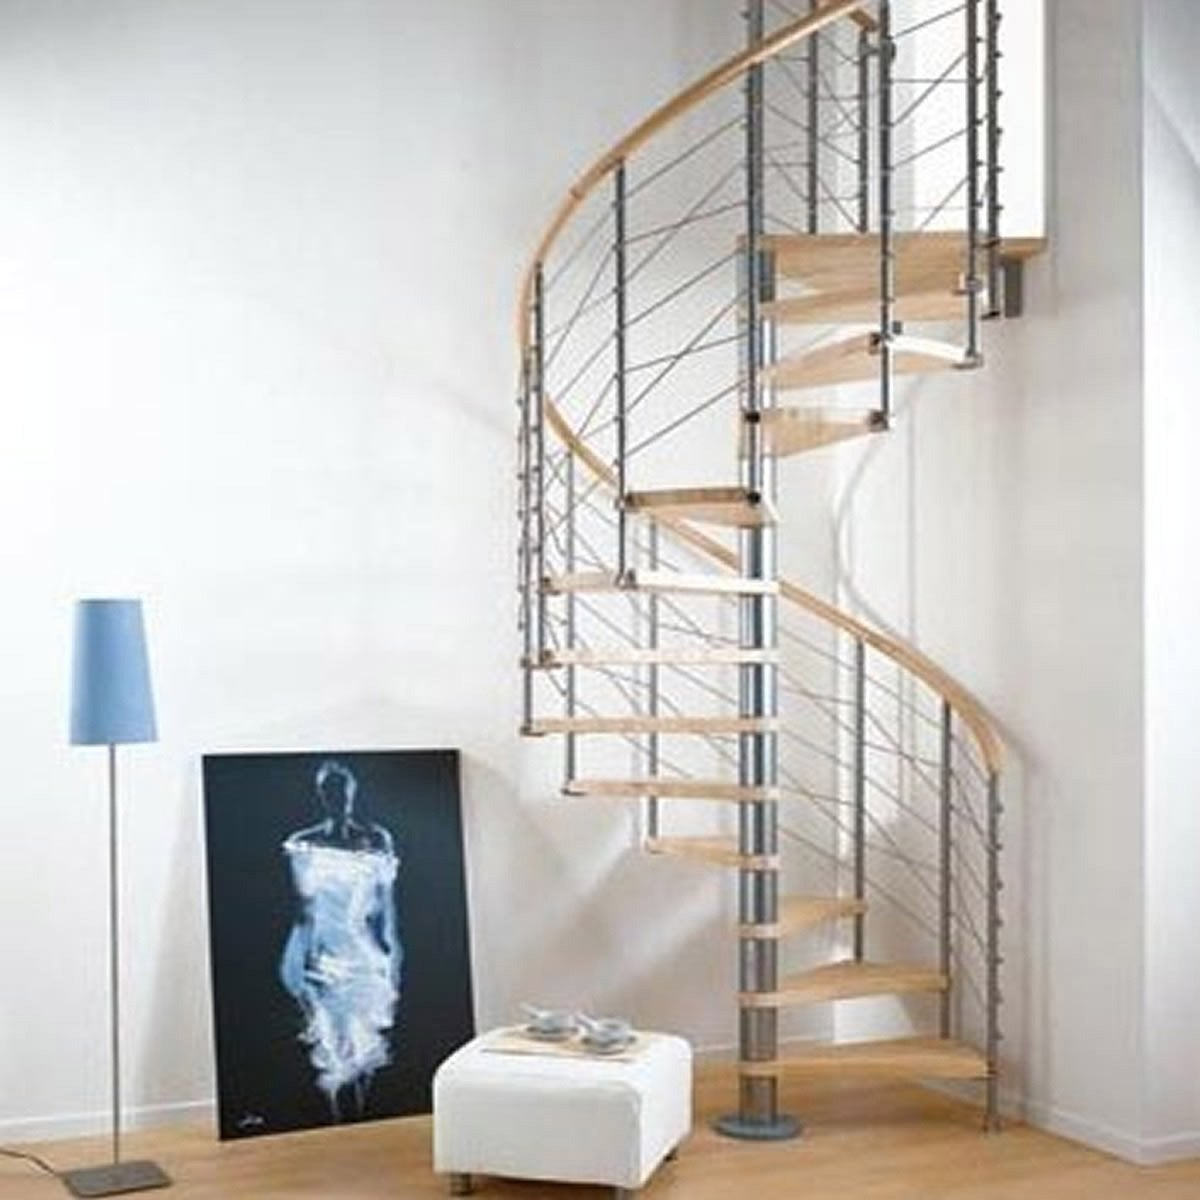 Escalier colima on rond ring structure m tal marche bois for Escalera 9 peldanos leroy merlin